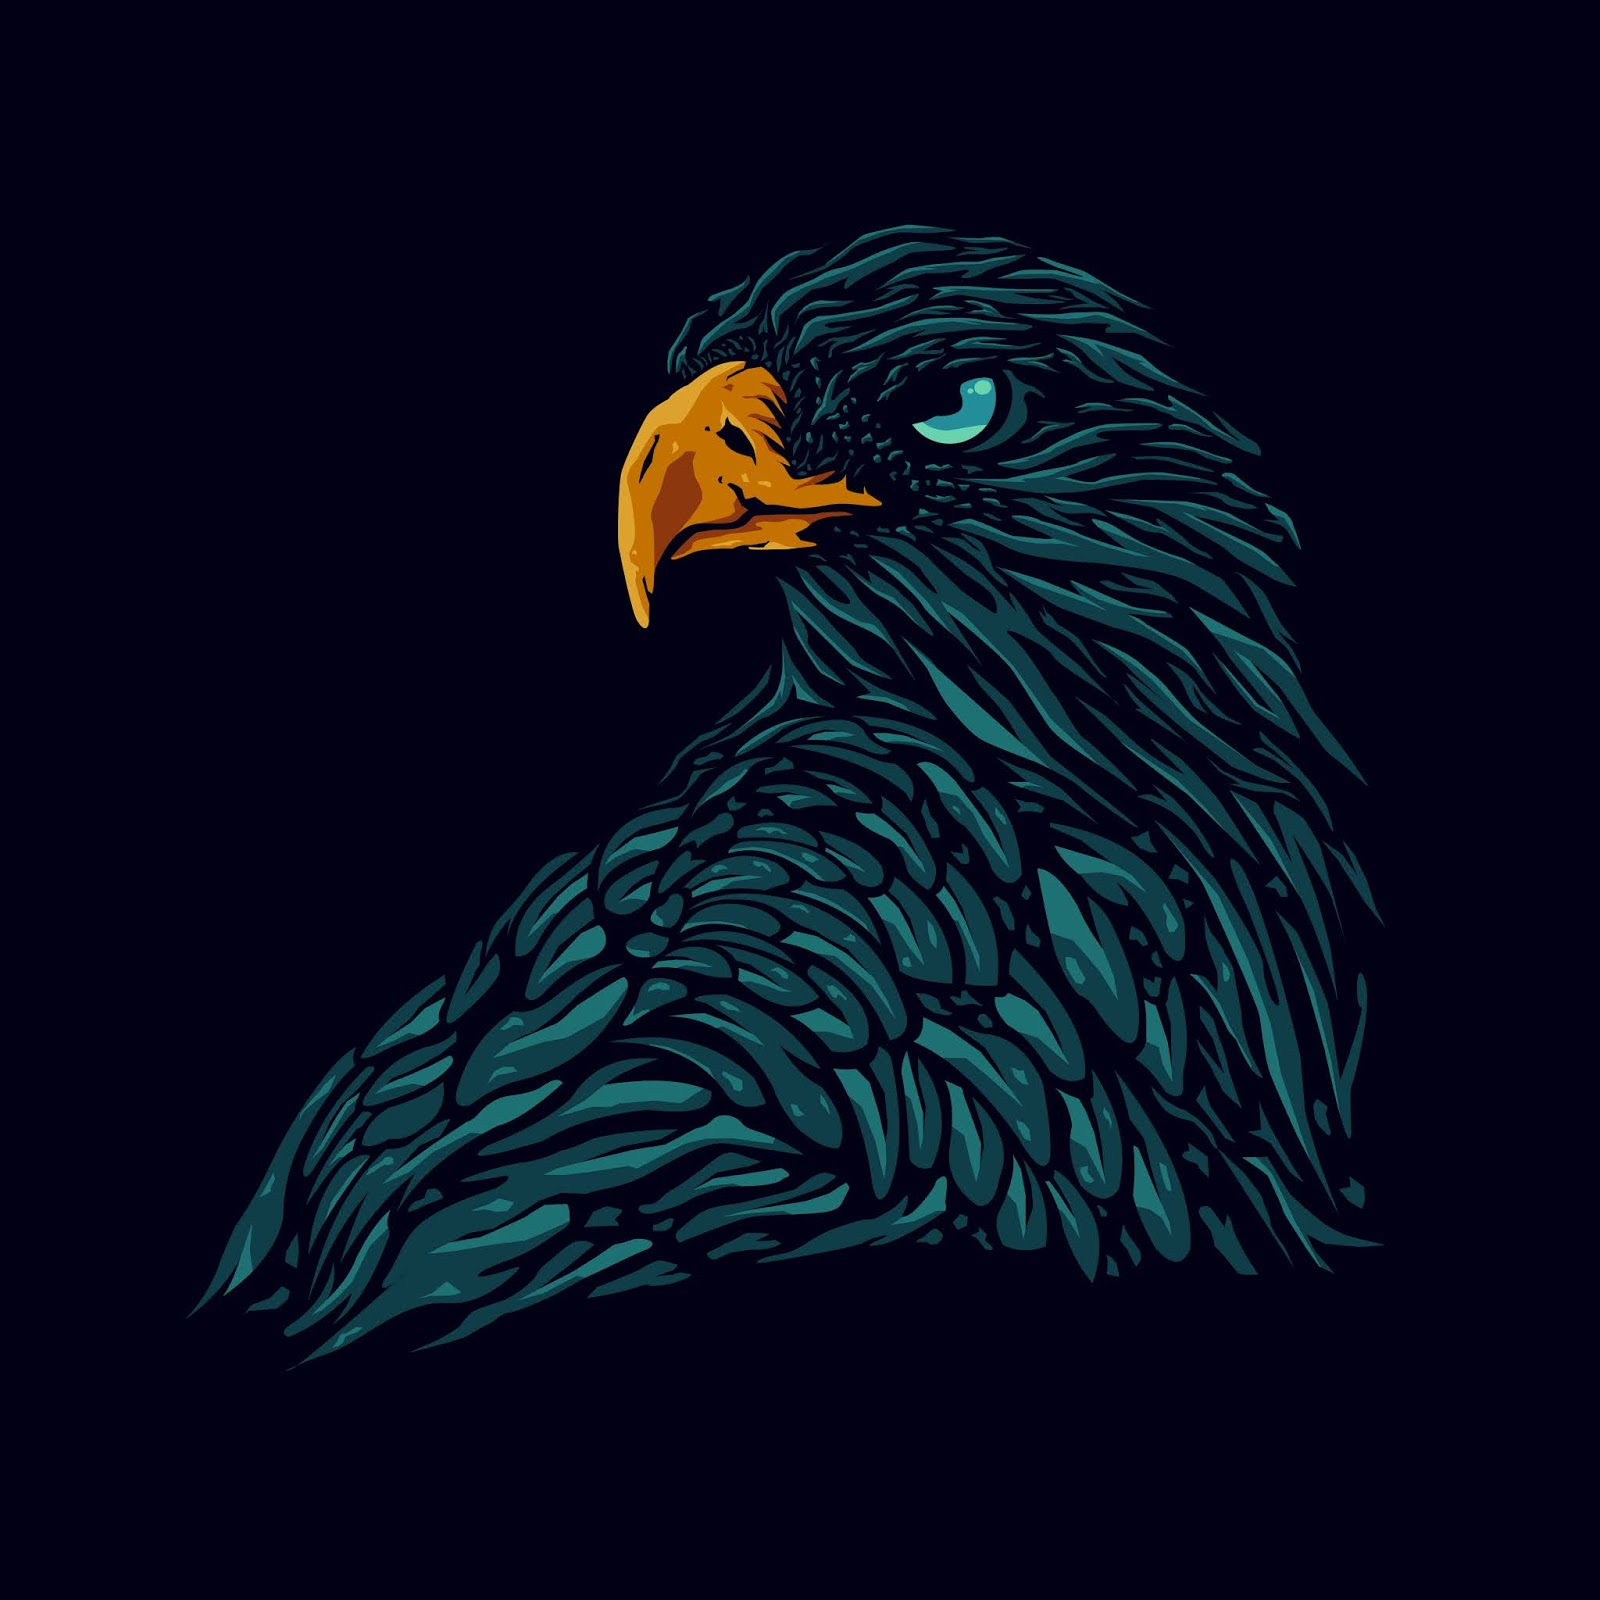 Eagle Head Illustration Free Download Vector CDR, AI, EPS and PNG Formats